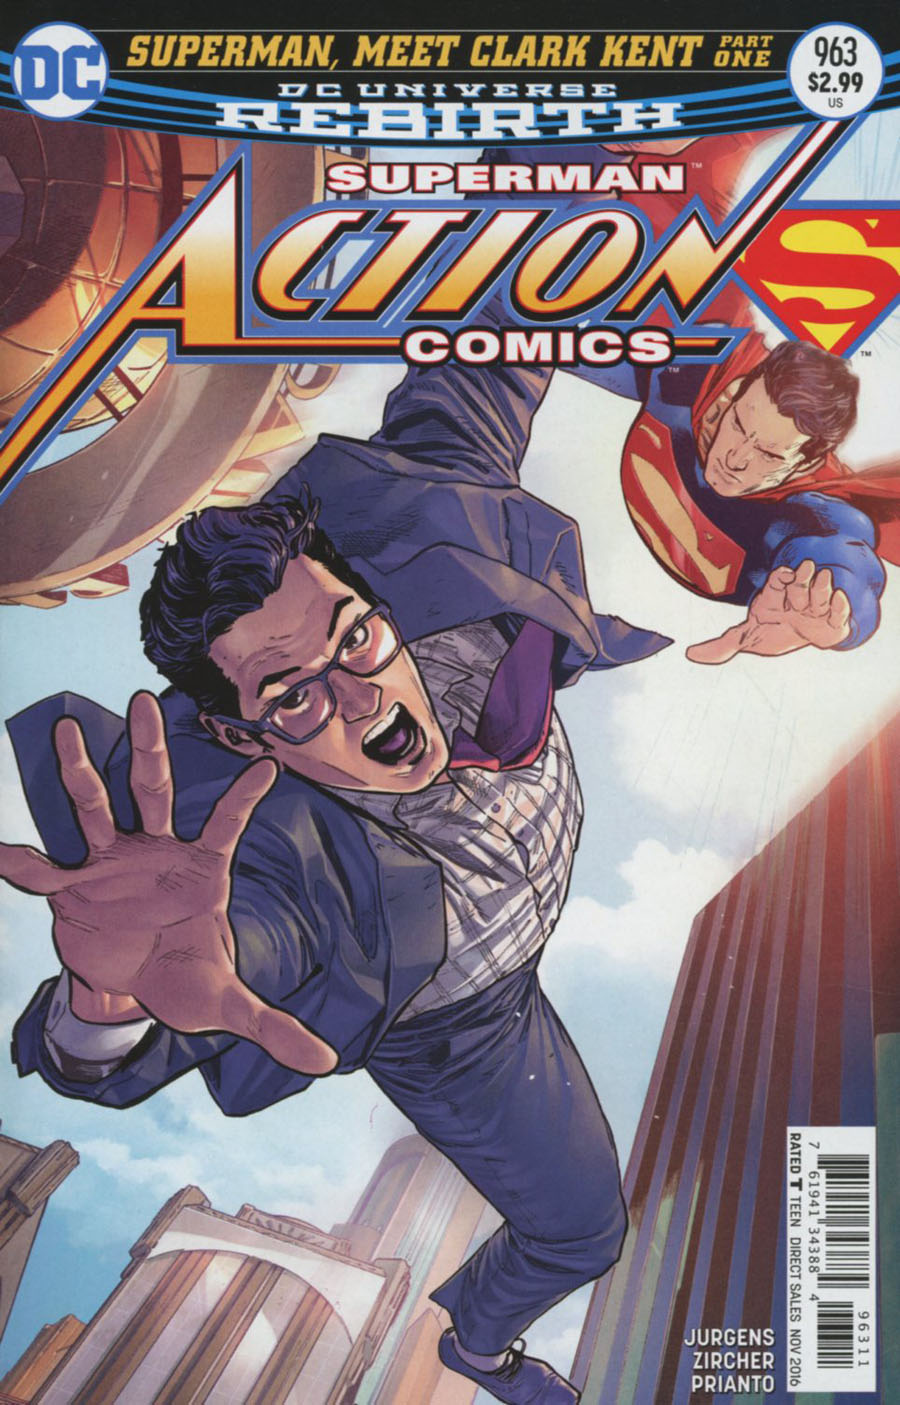 Action Comics Vol 2 #963 Cover A Regular Clay Mann Cover